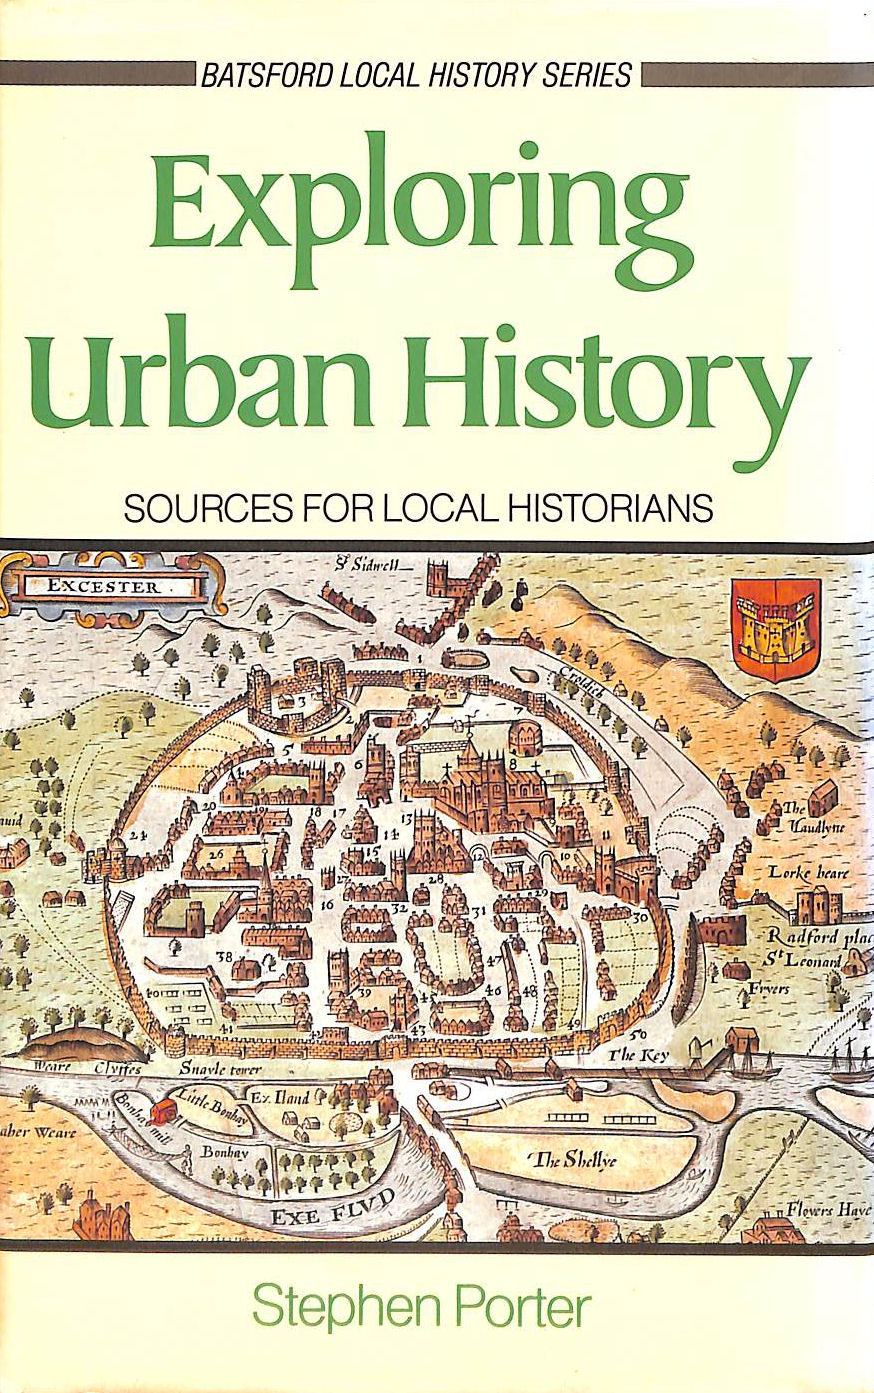 Image for Exploring Urban History: Sources for Local Historians (Batsford Local History Series)